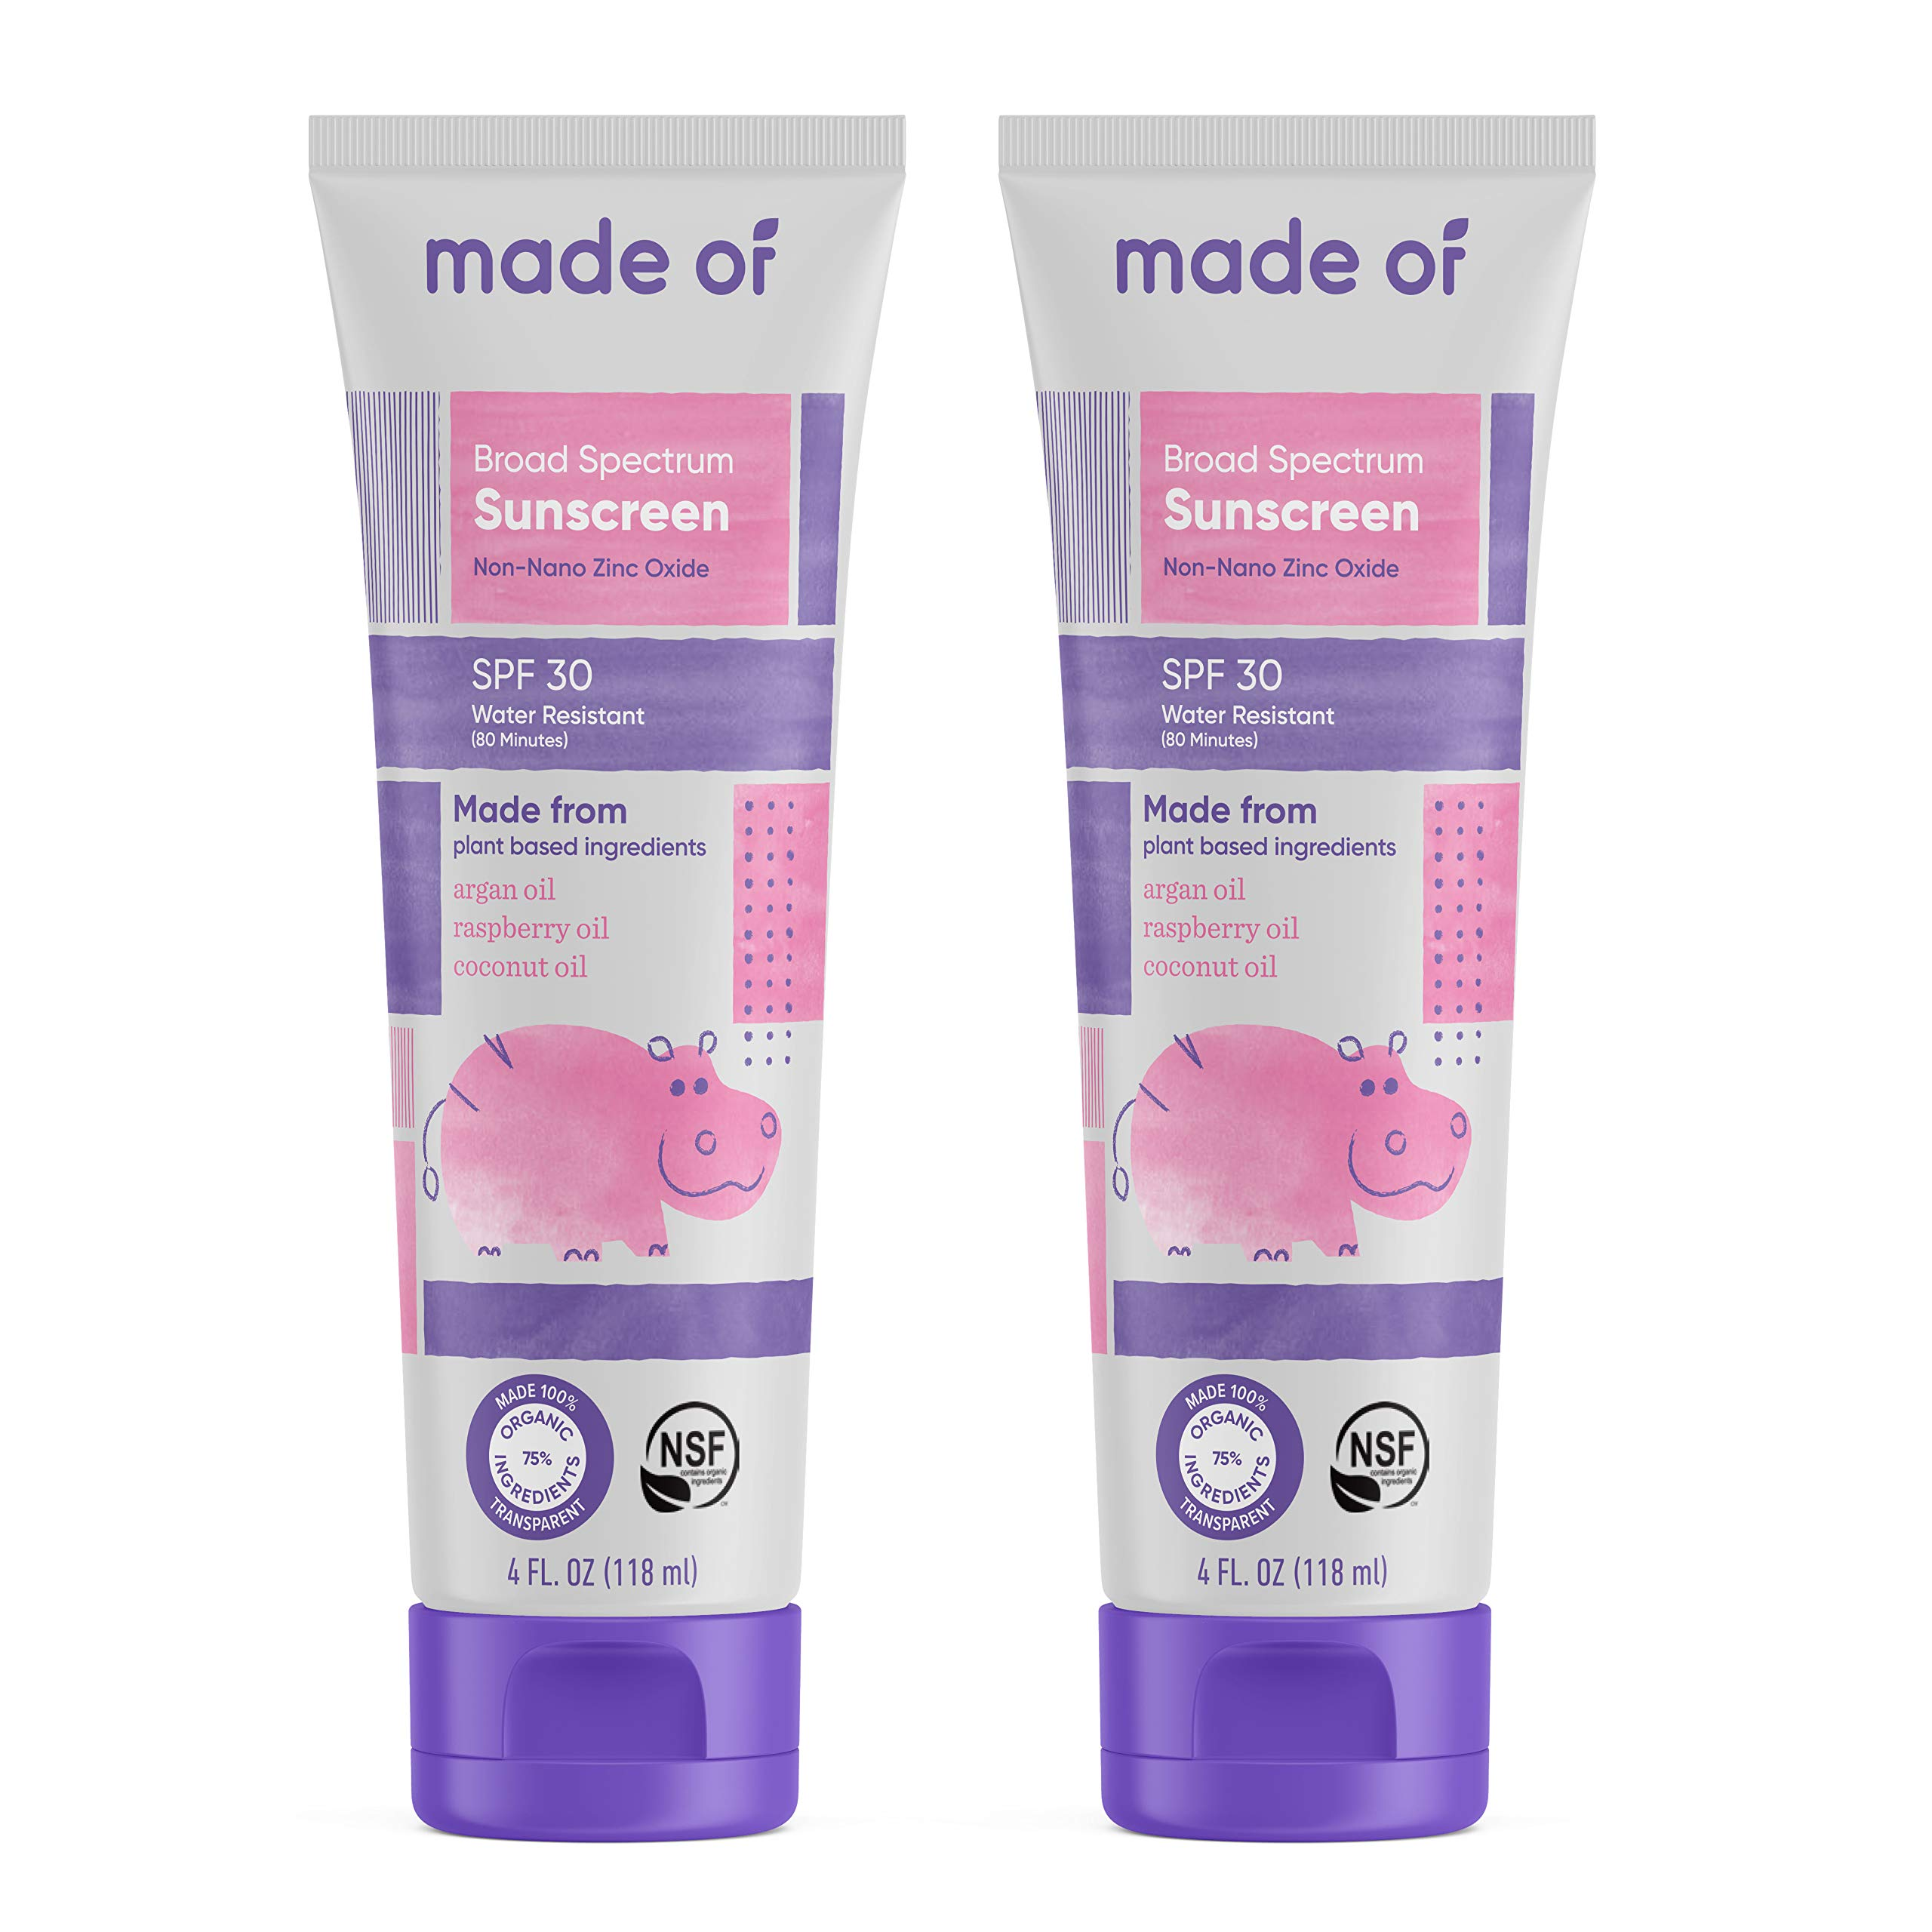 Baby Sunscreen Organic SPF 30 Broad Spectrum by MADE OF - EWG Sunscreen Rated 1 & NSF Organic - Made in USA - 4oz - (Fragrance Free, 2-Pack)